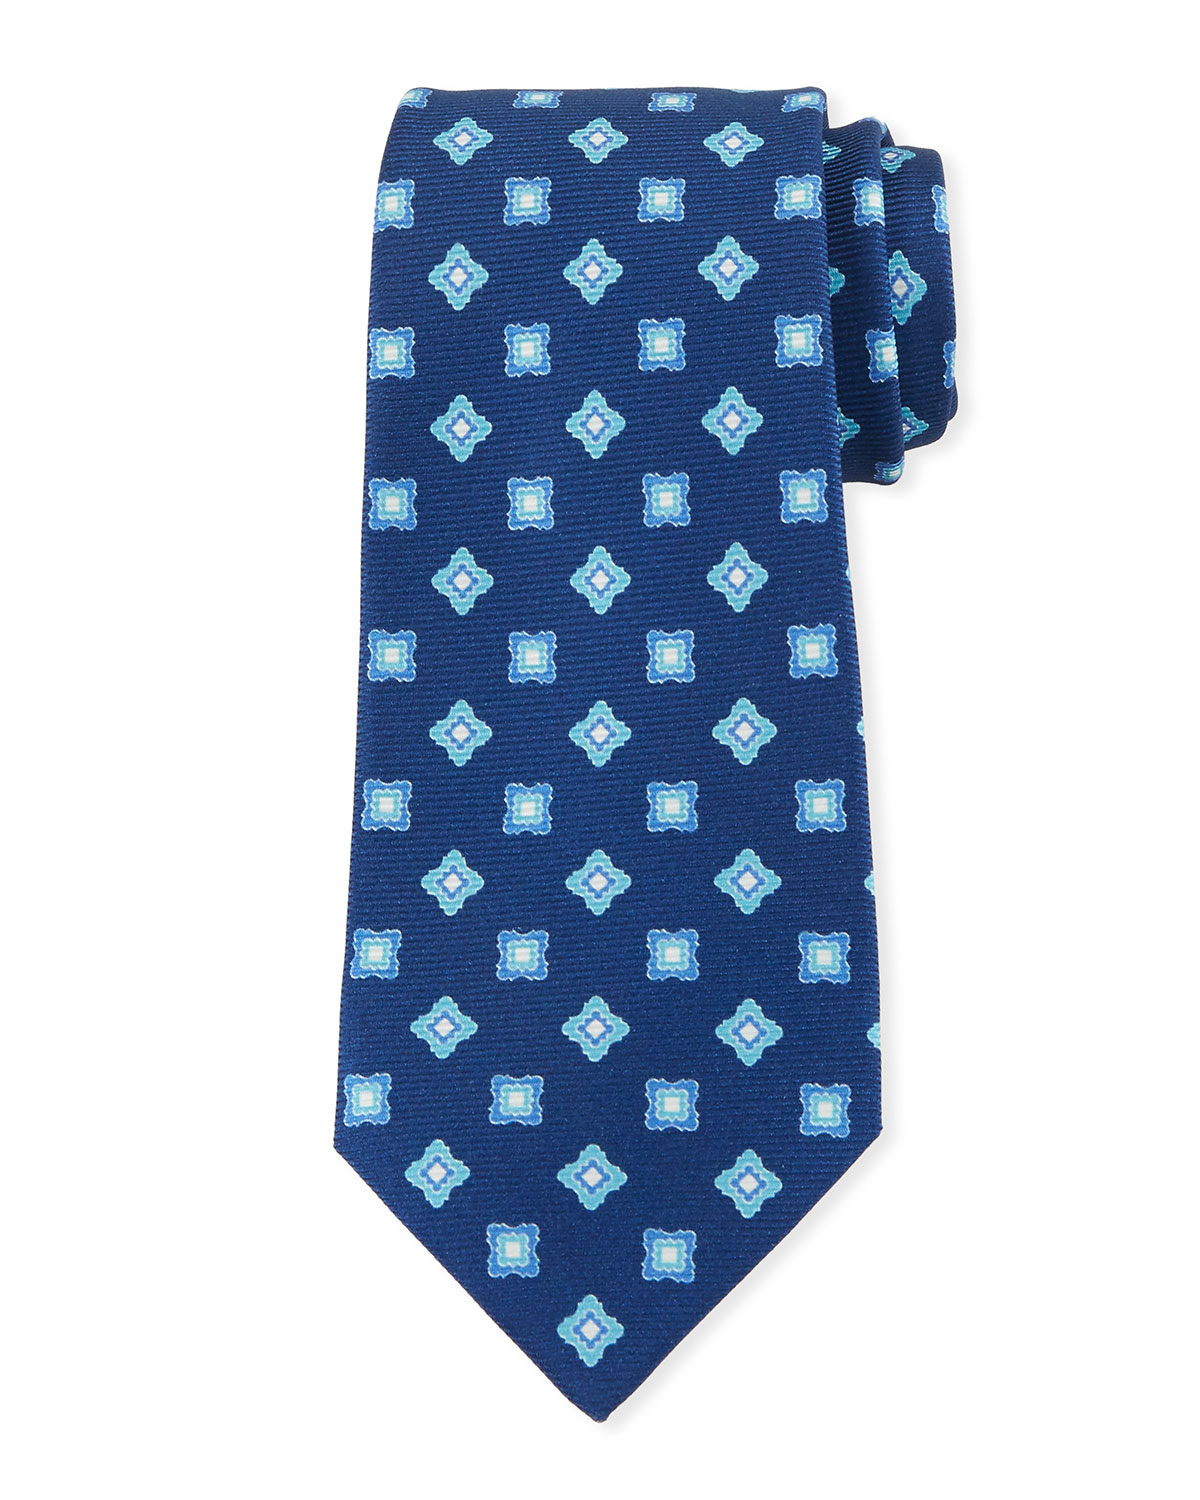 Kiton Ties BOXES & DIAMONDS SILK TIE, BLUE